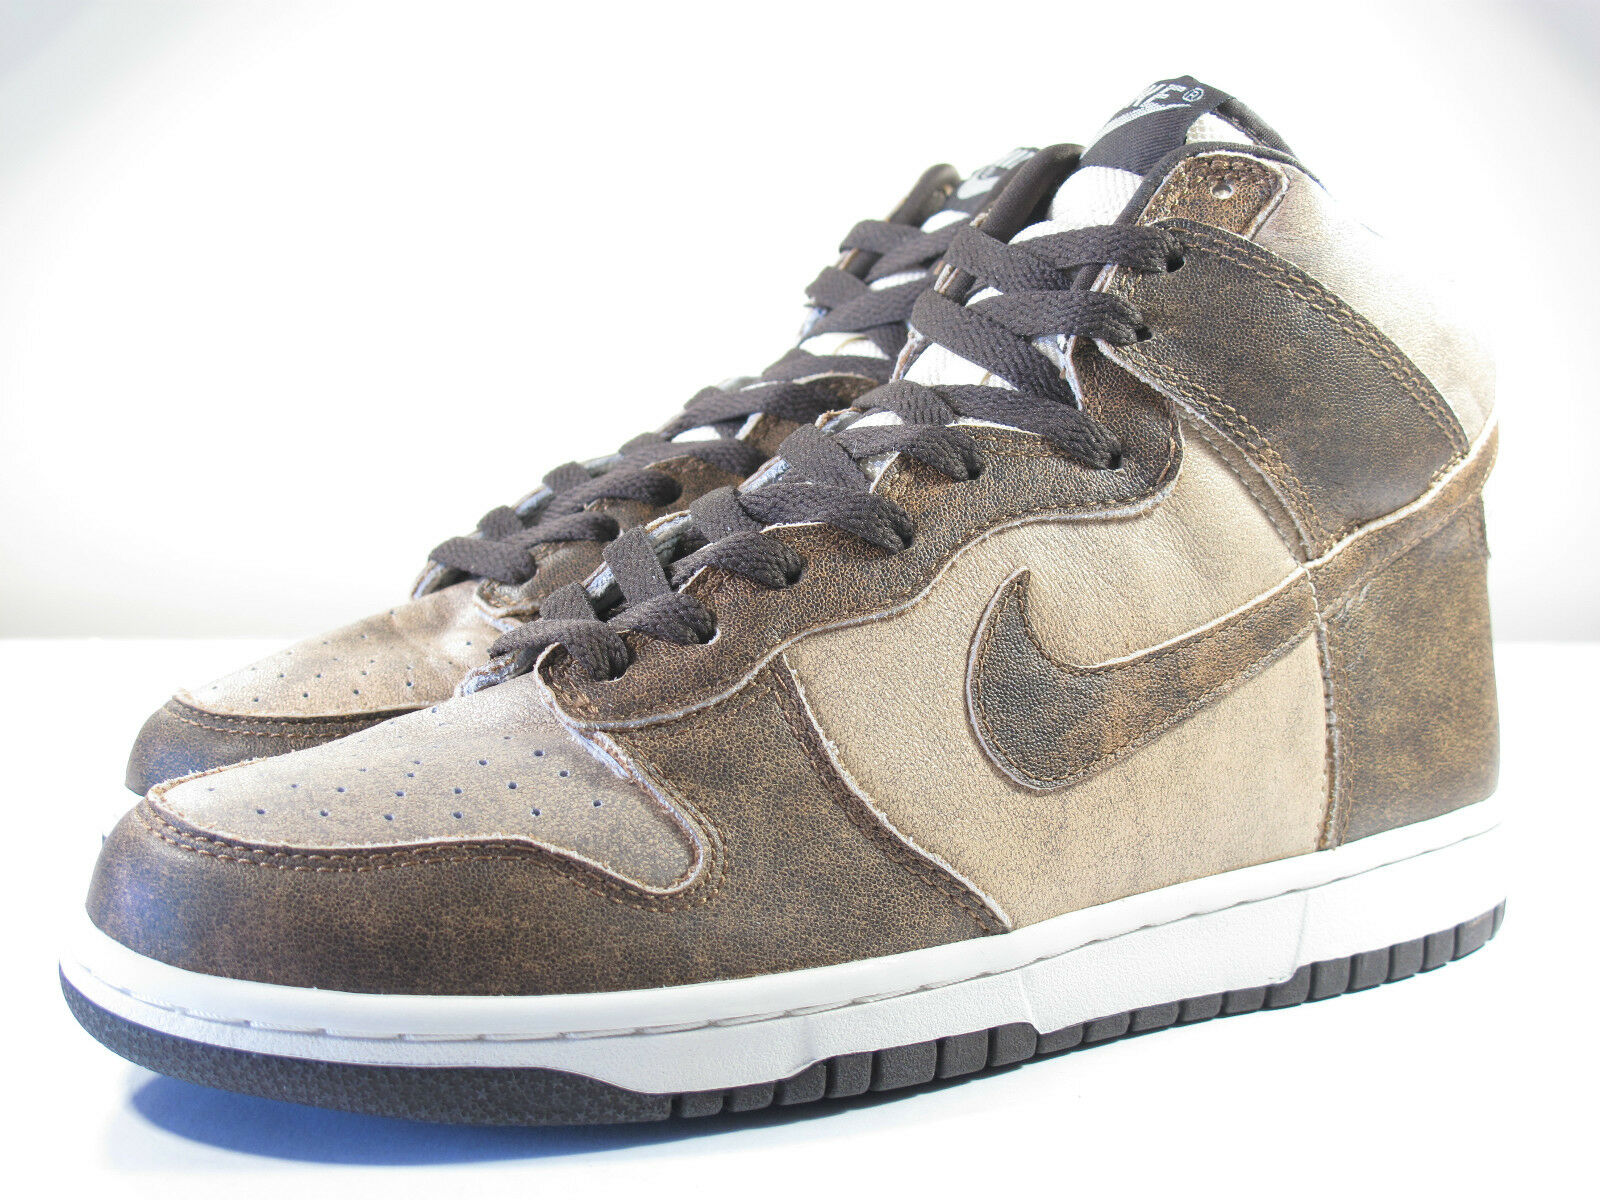 DS NIKE 2003 DUNK GRUNGE PACK 9.5 SB SUPREME SAFARI ATMOS LUCKY LONDON WHAT THE